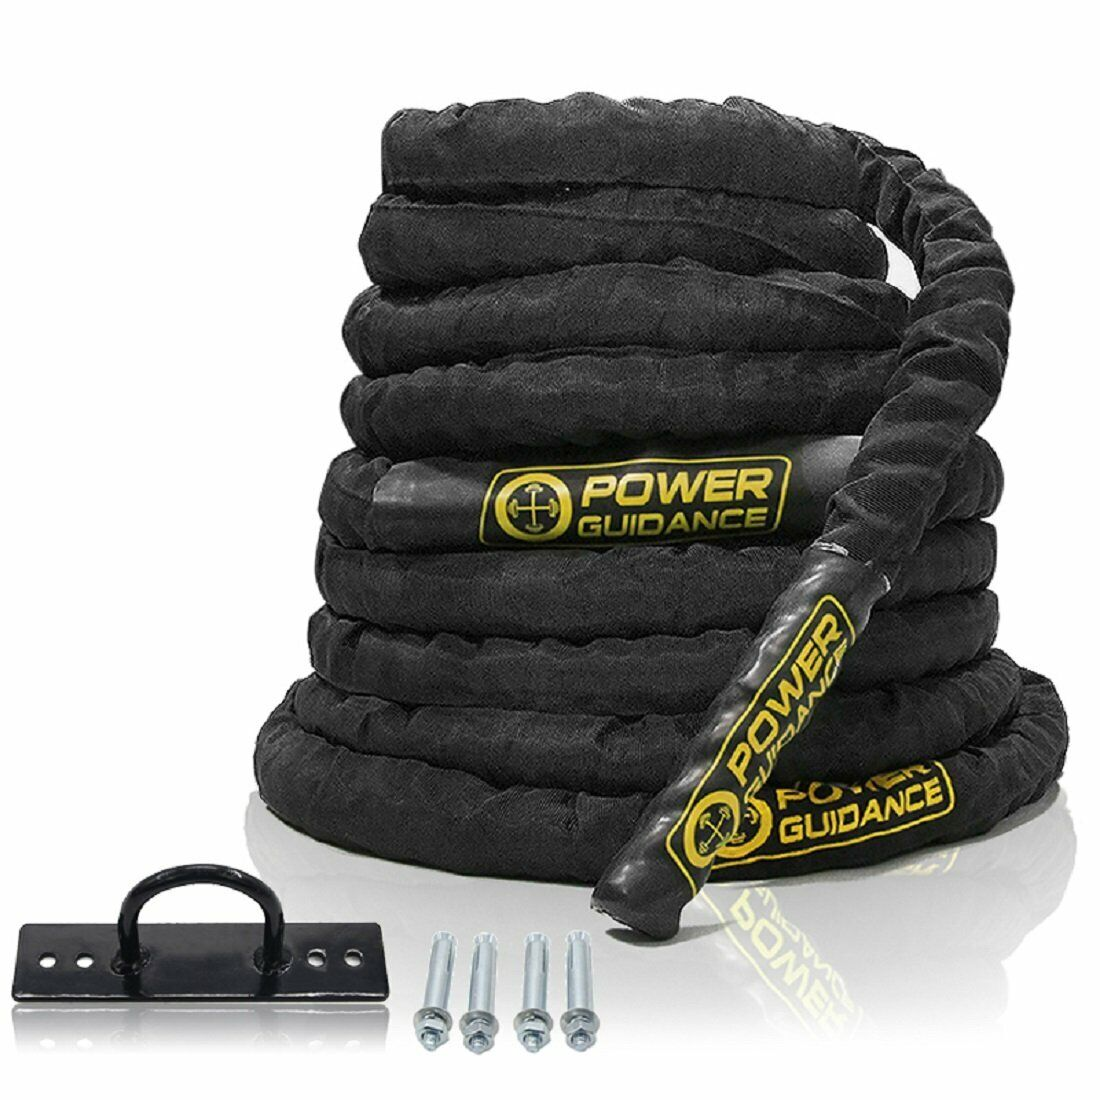 POWER  GUIDANCE Battle Rope, 1.5  Width Poly Dacron 30 40 50ft Length Exercise  your satisfaction is our target